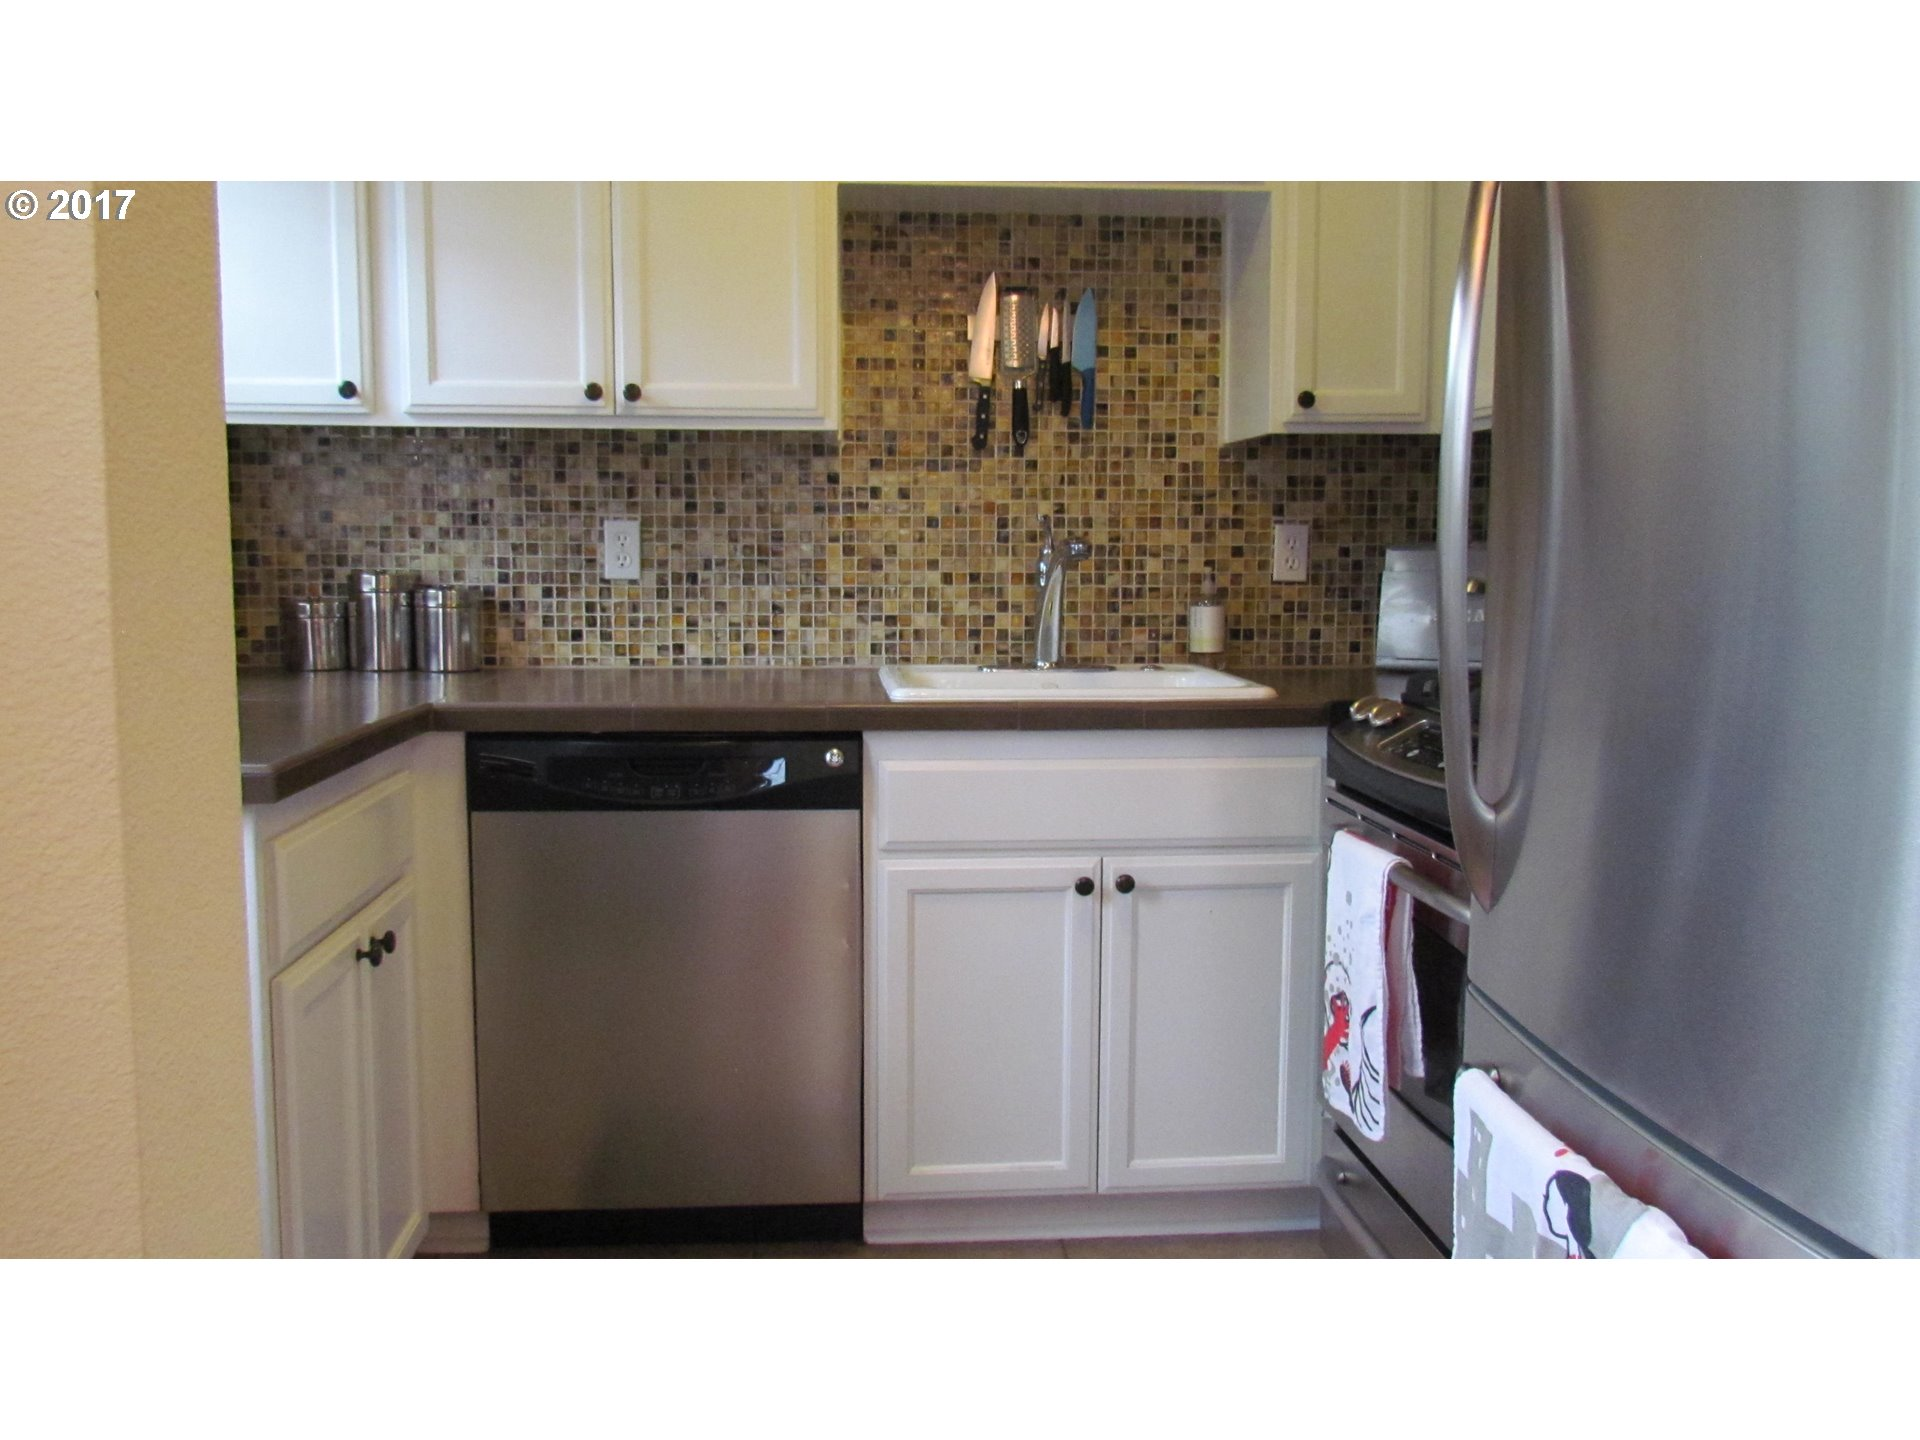 852 sq. ft 2 bedrooms 1 bathrooms  House For Sale, Portland, OR